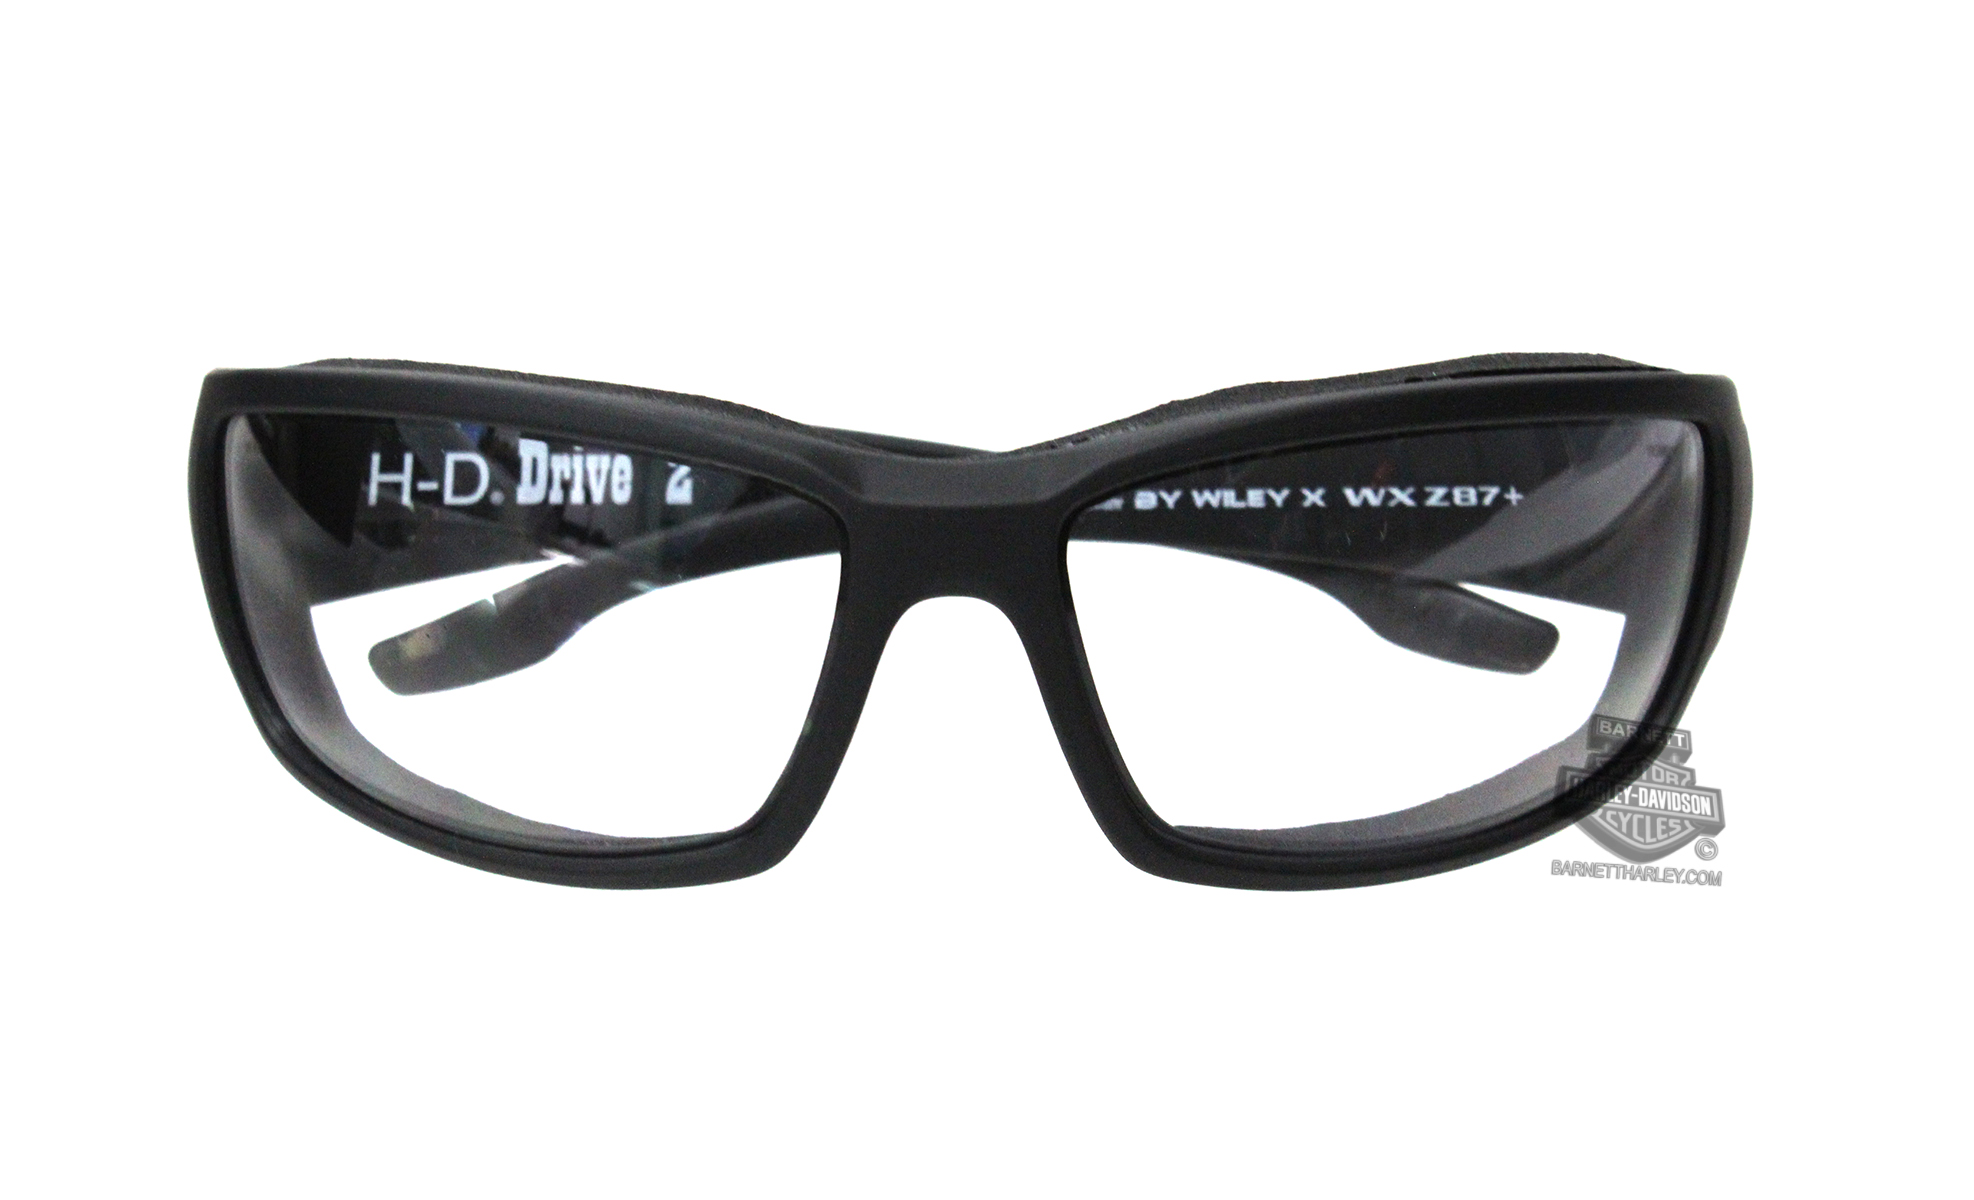 bea1f90bab2 ... Harley-Davidson® HD Drive 2 Clear lens in a Matte Black Frame Sunglasses  by Wiley X®. Tap to expand